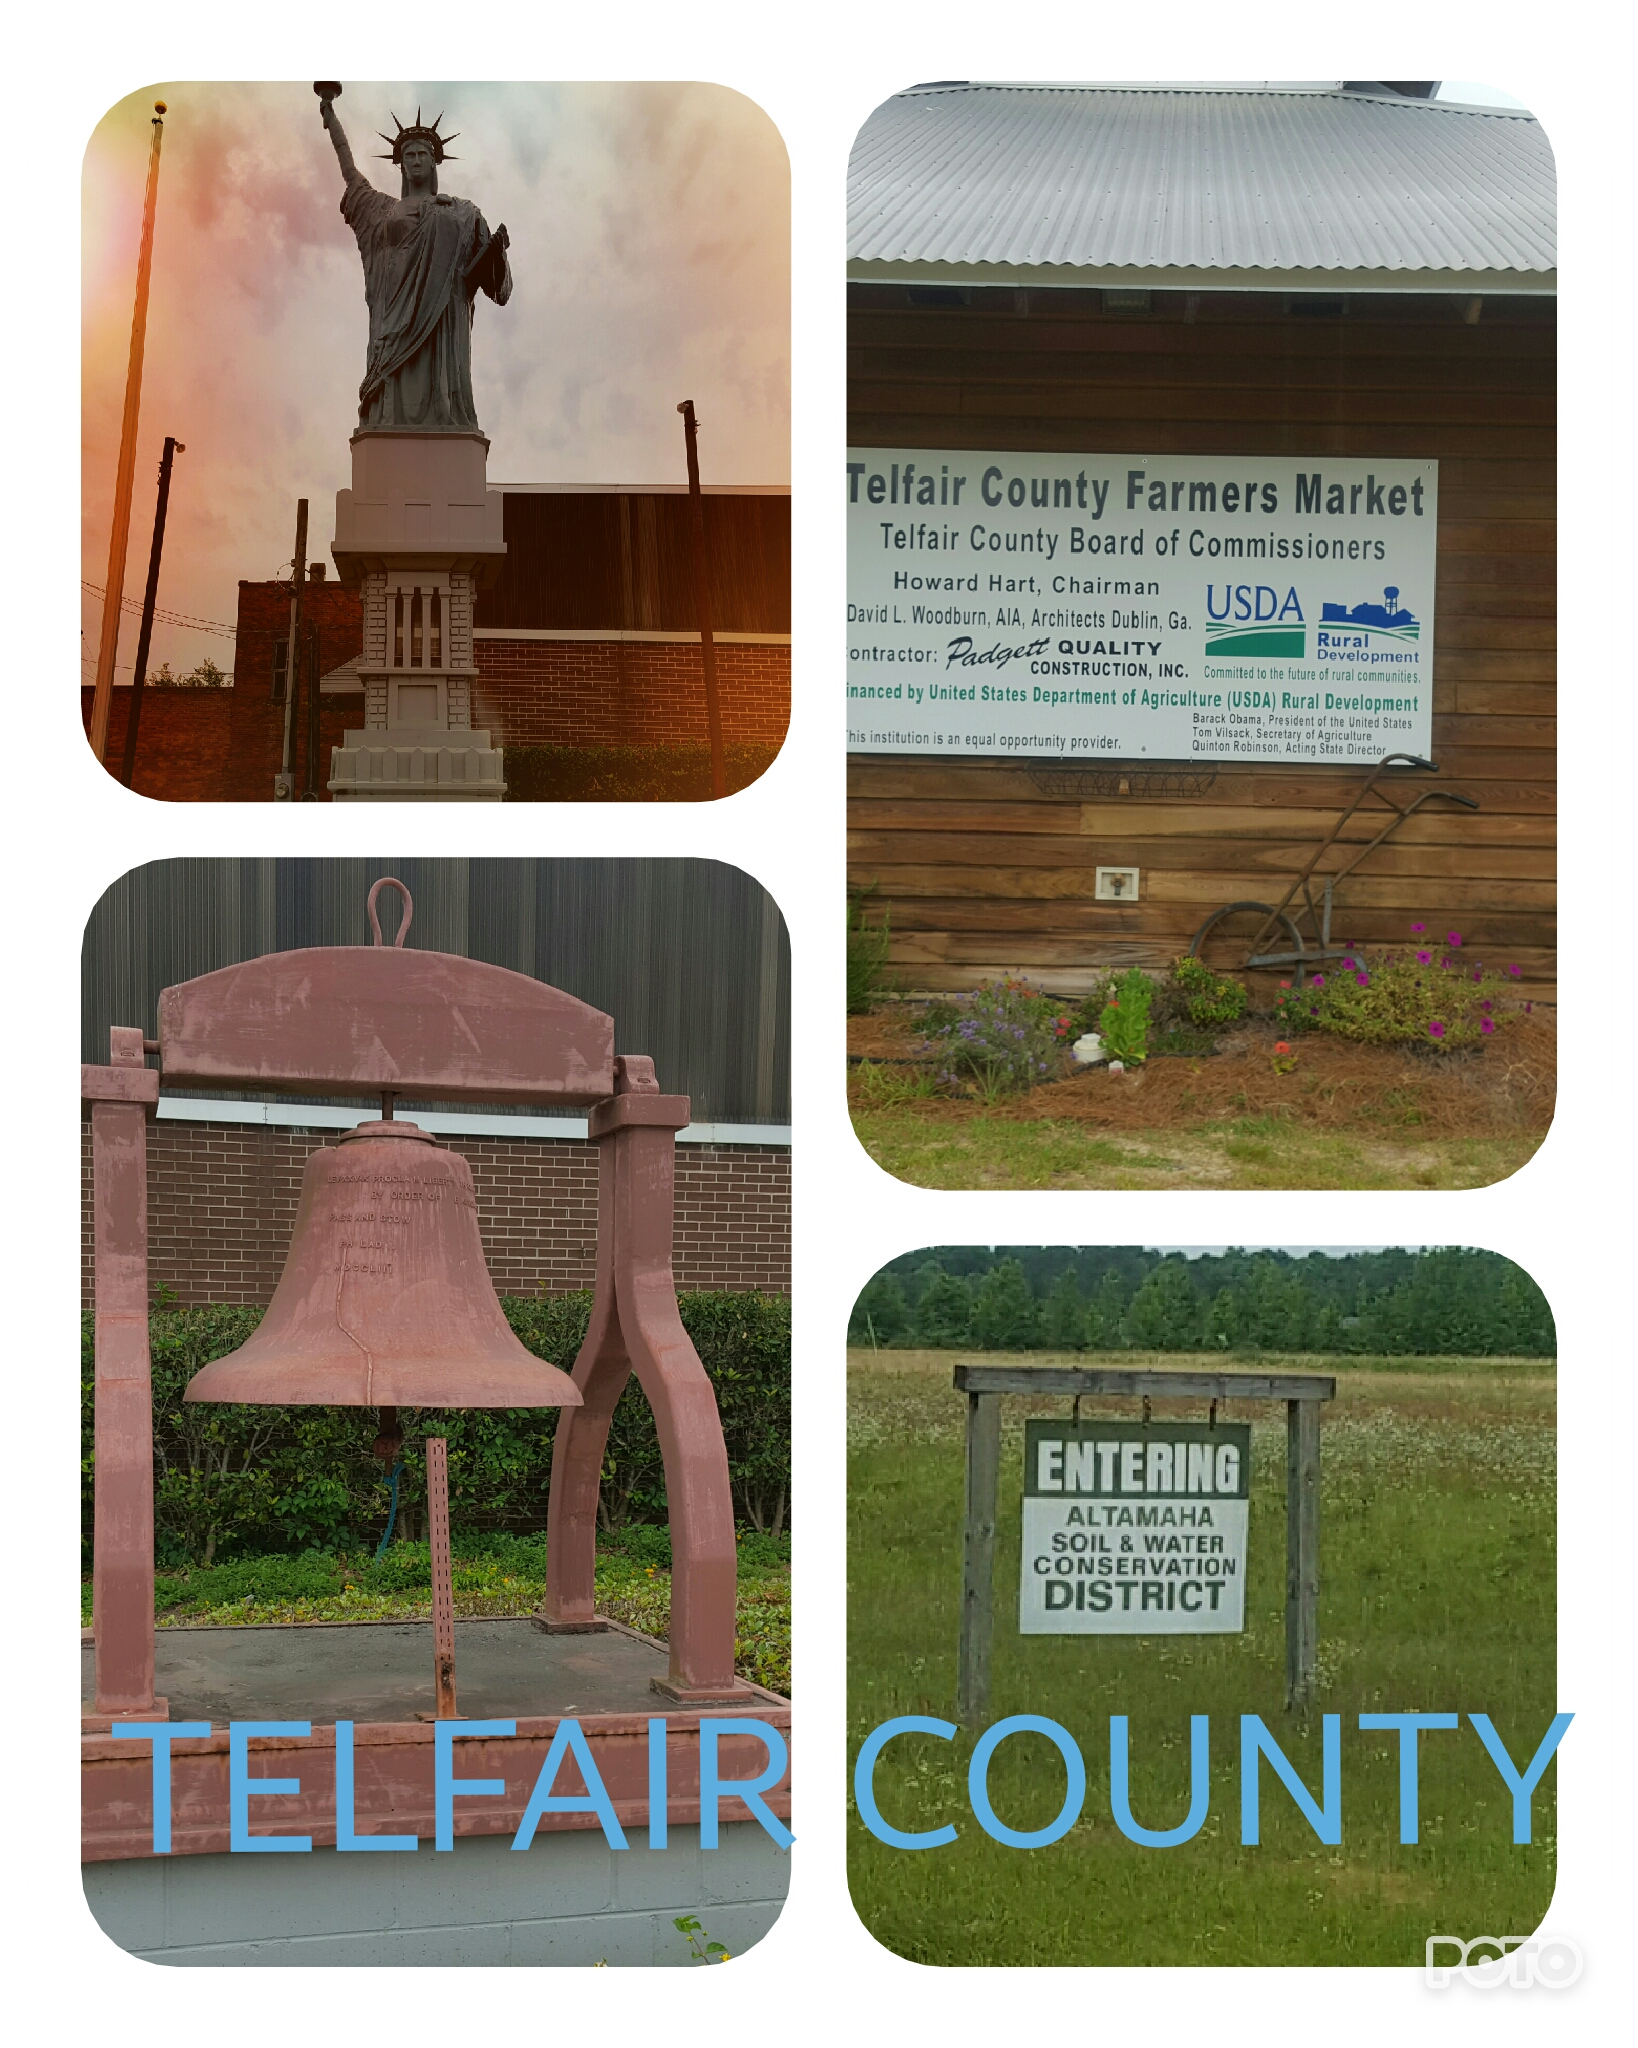 Copy of TELFAIR COUNTY.jpg